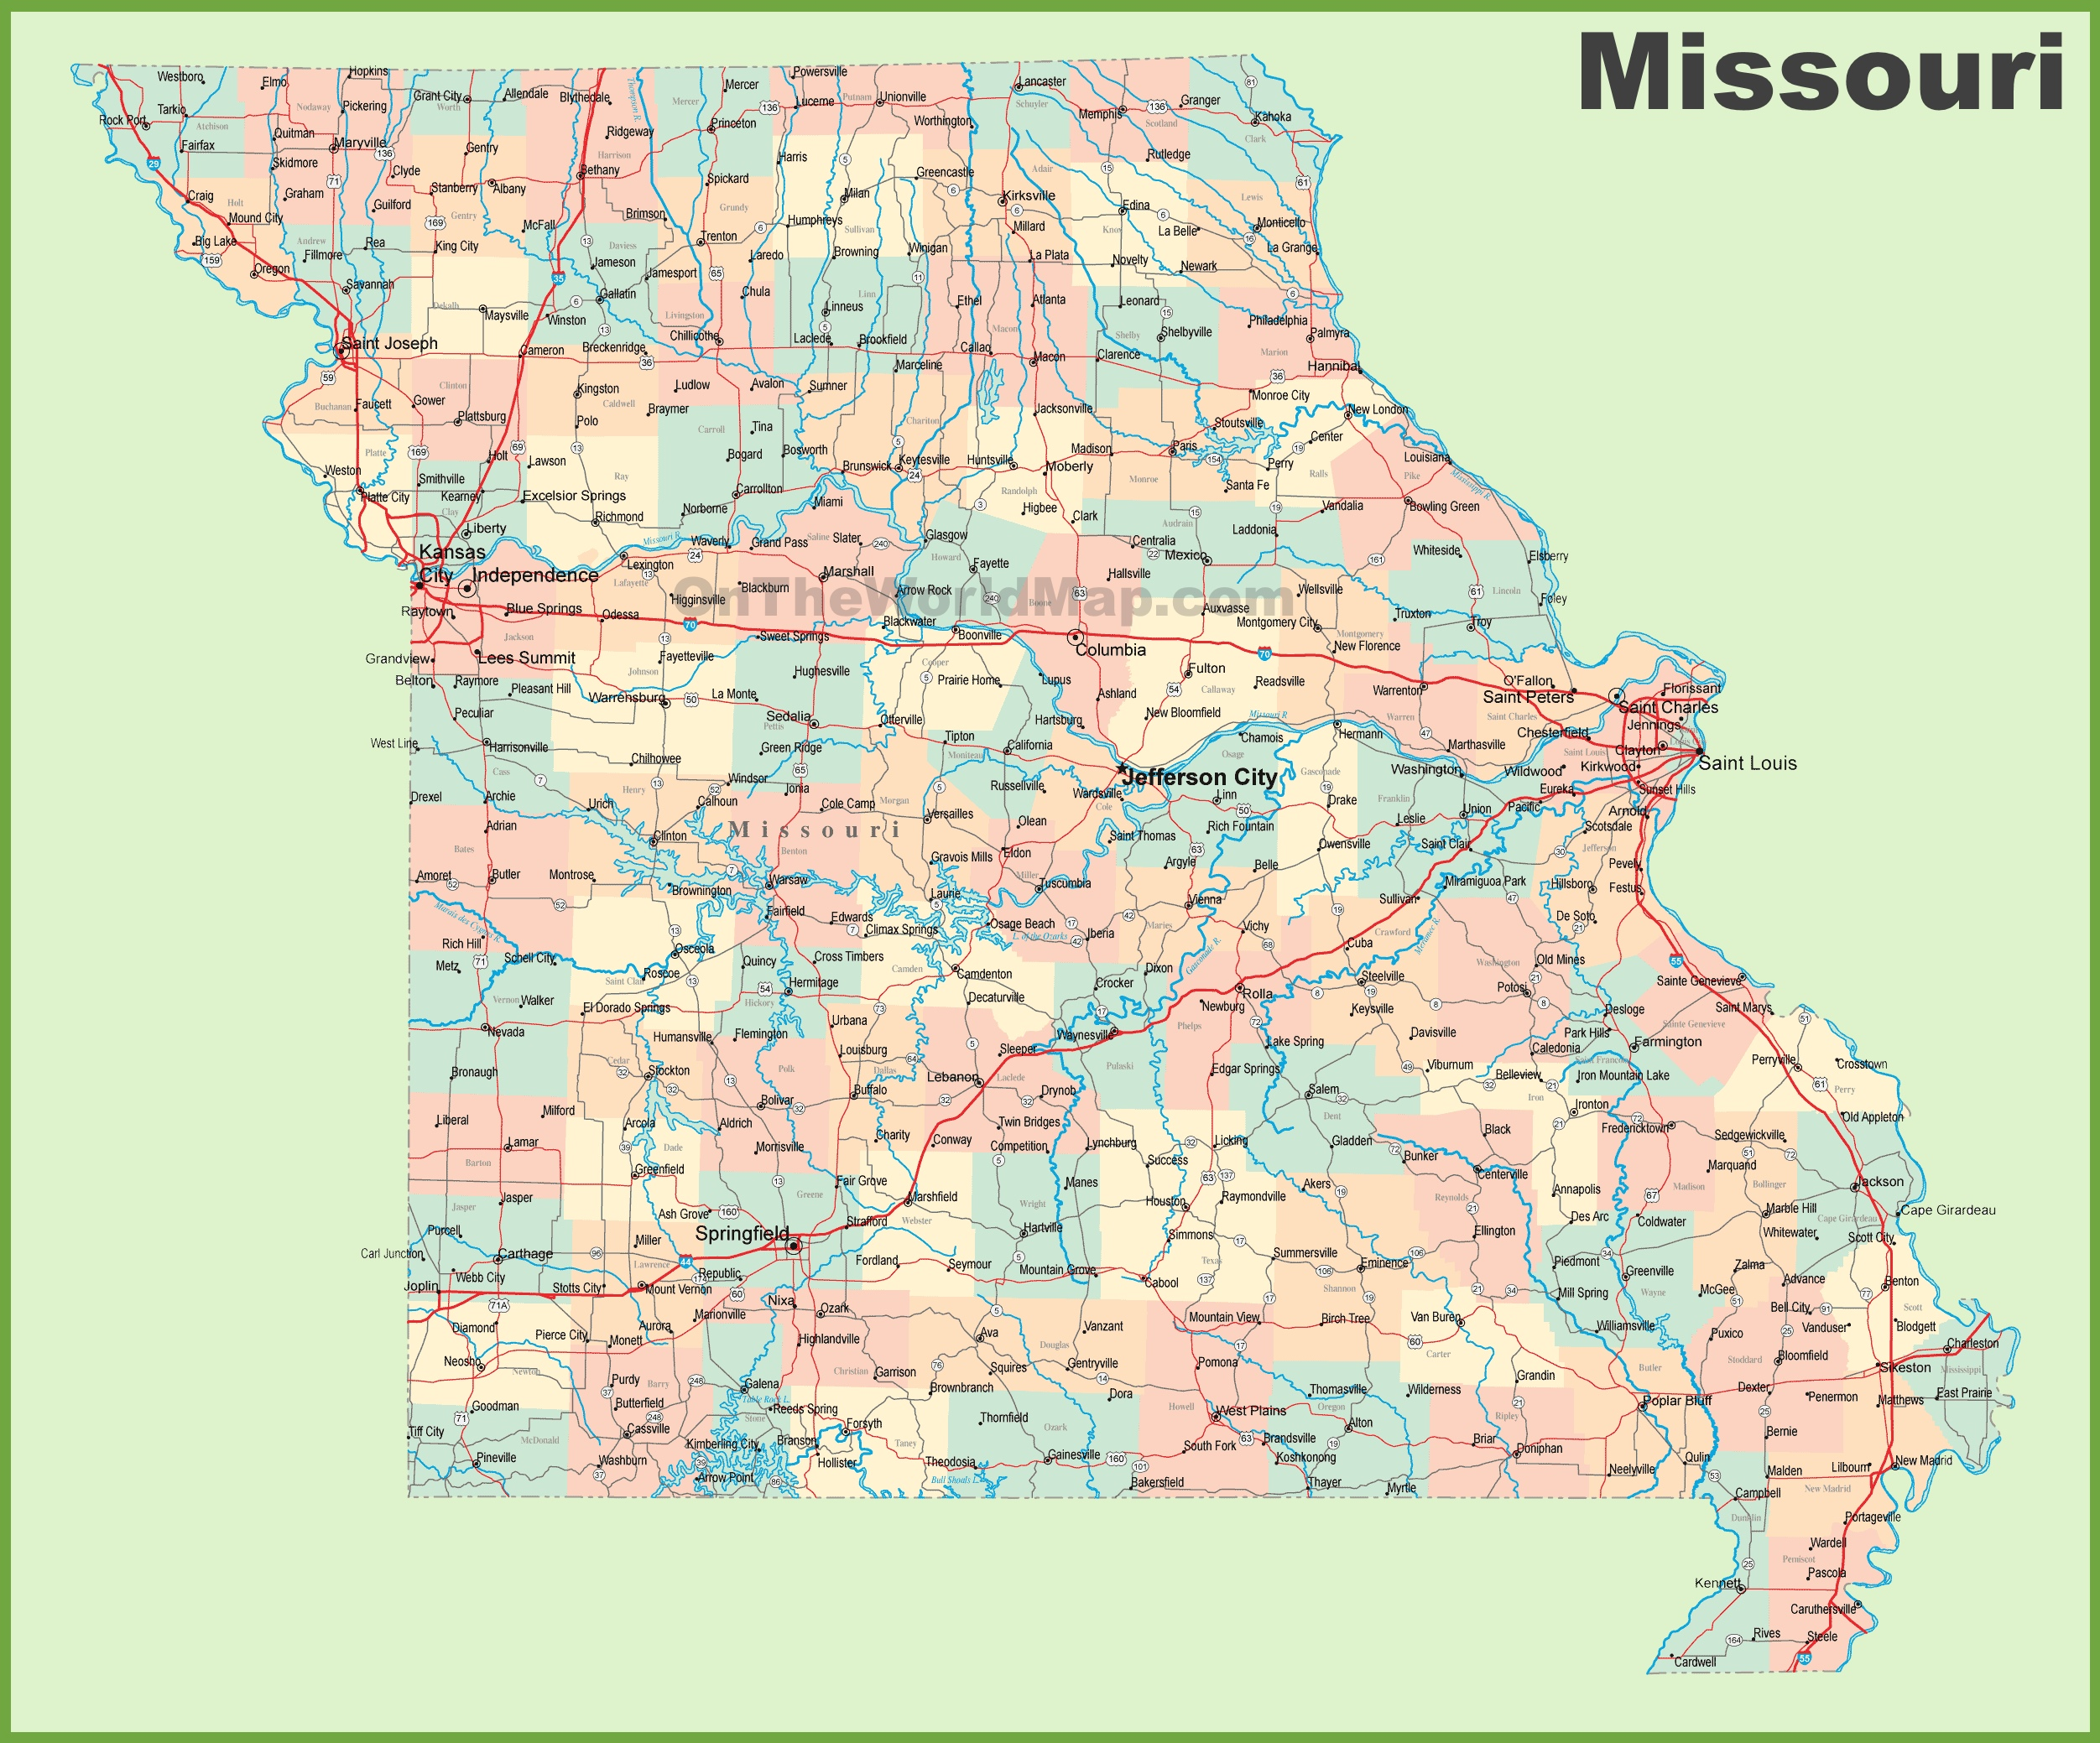 Missouri State Maps USA Maps Of Missouri MO - Missouri in usa map